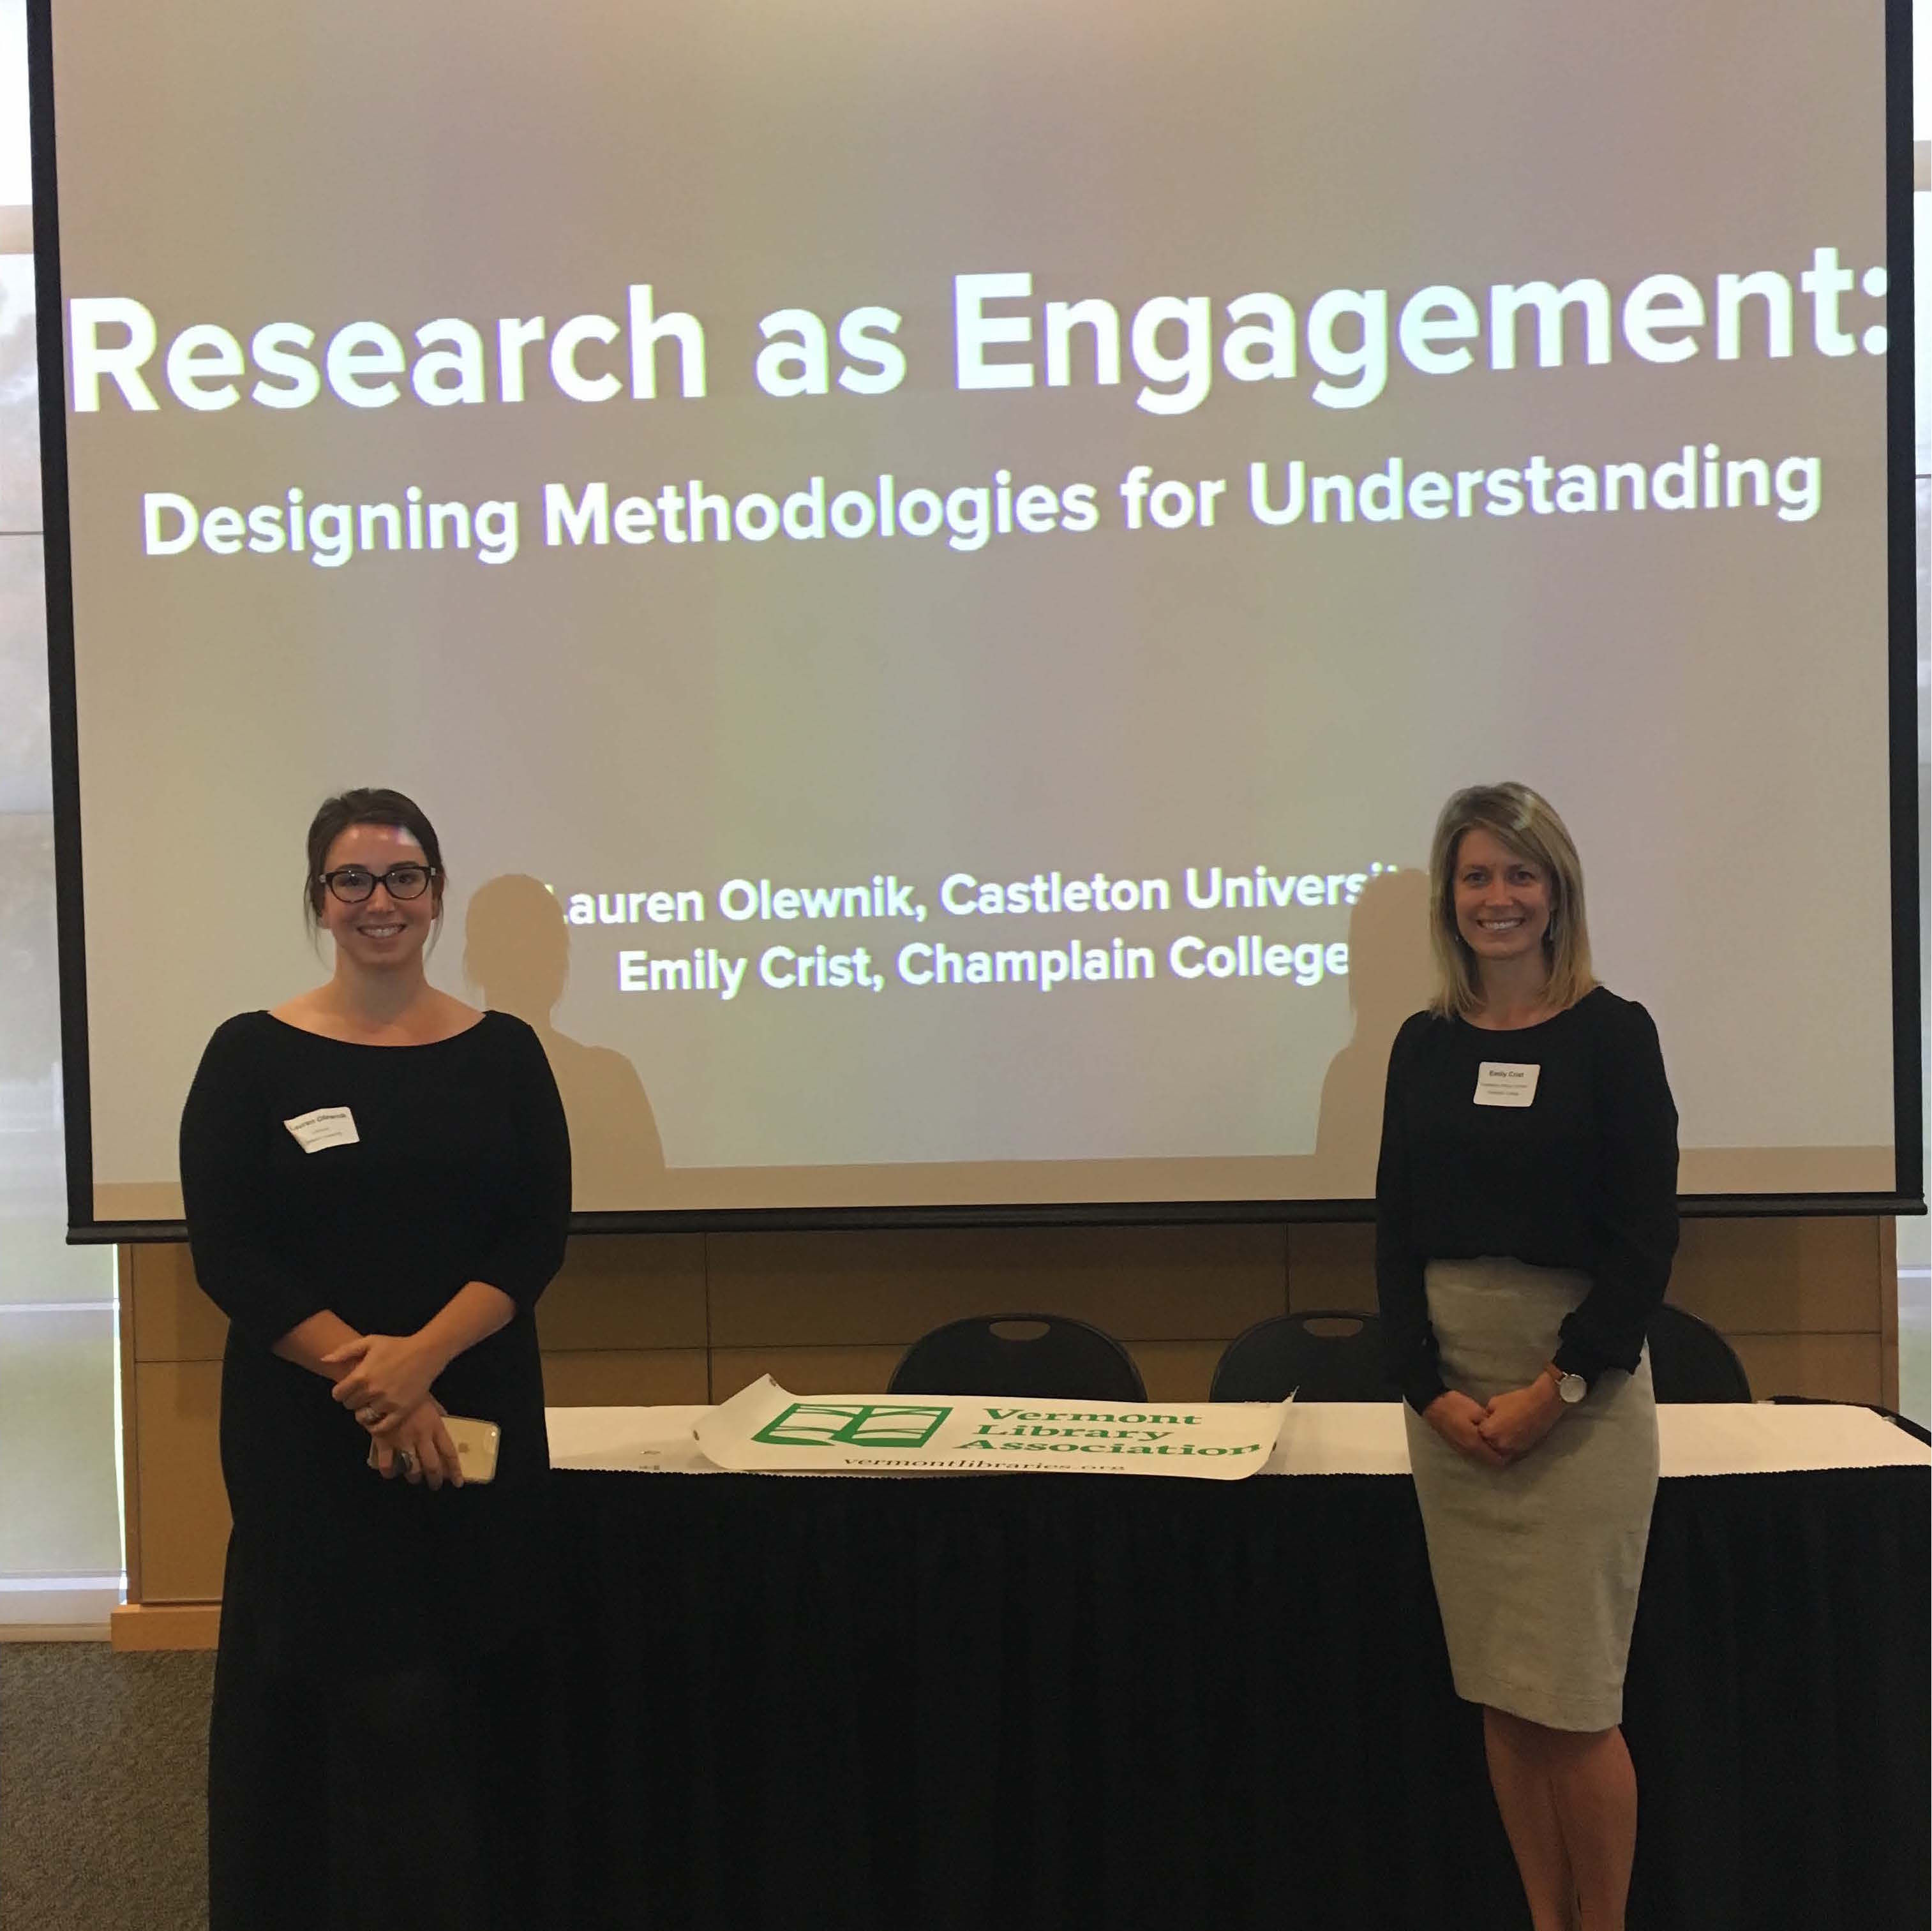 Lauren Olewnik and Emily Crist stand in front of their presentation on Research as Engagement